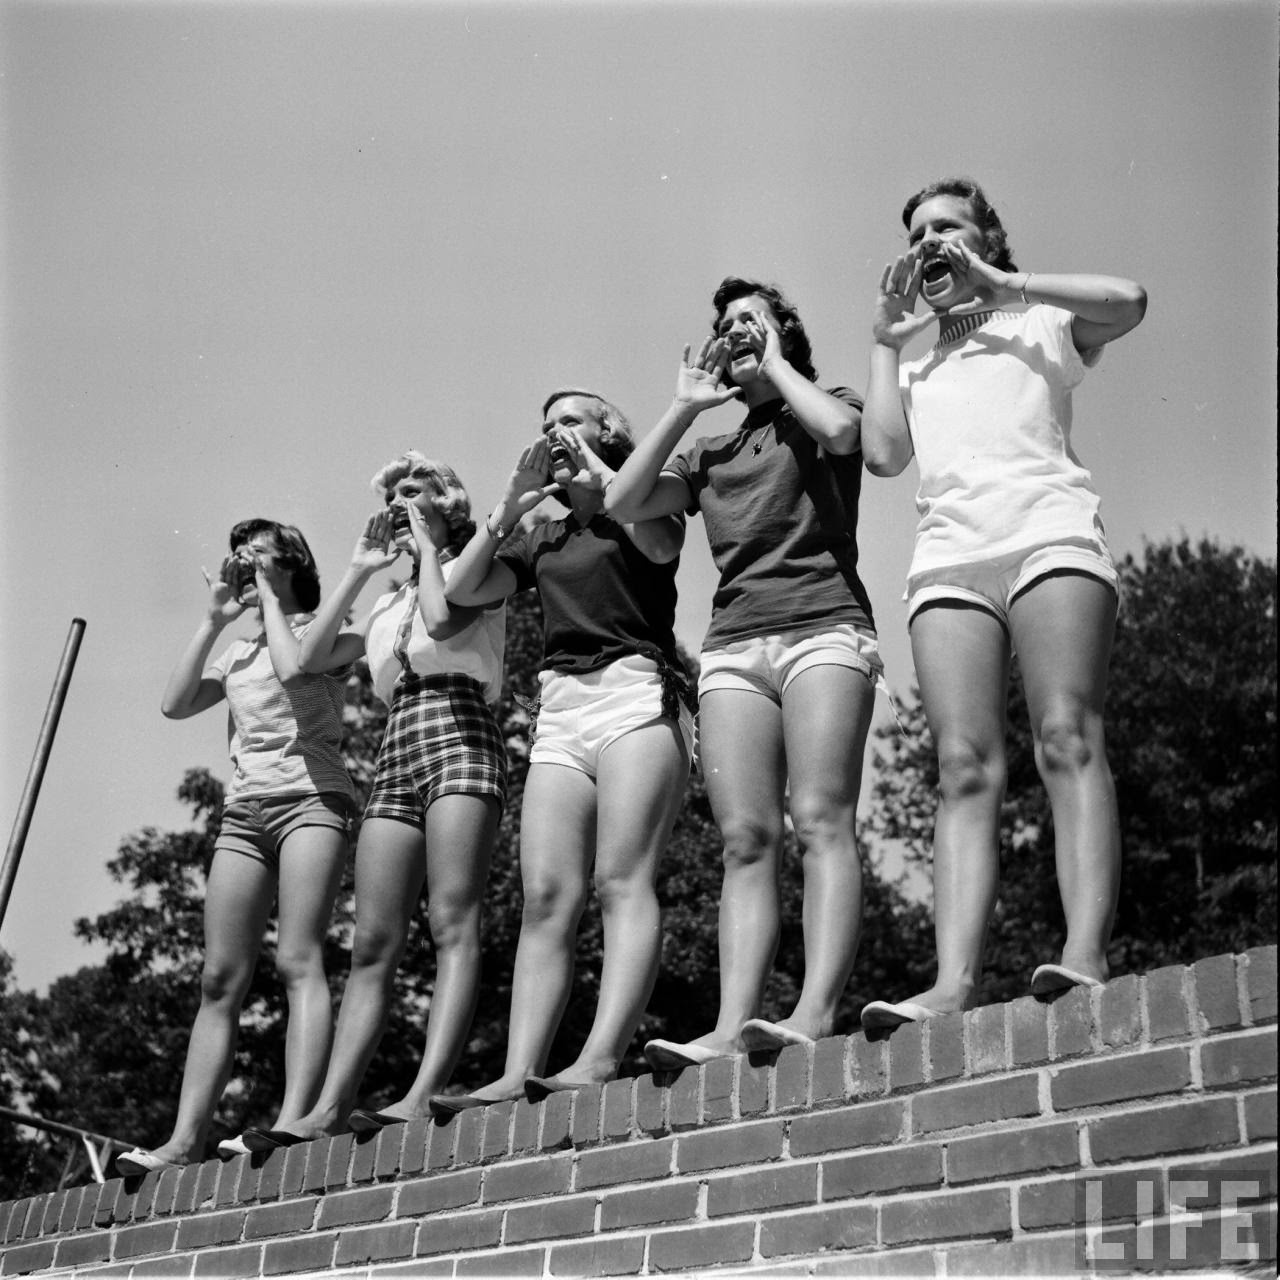 Short Shorts in the 1950's (25)